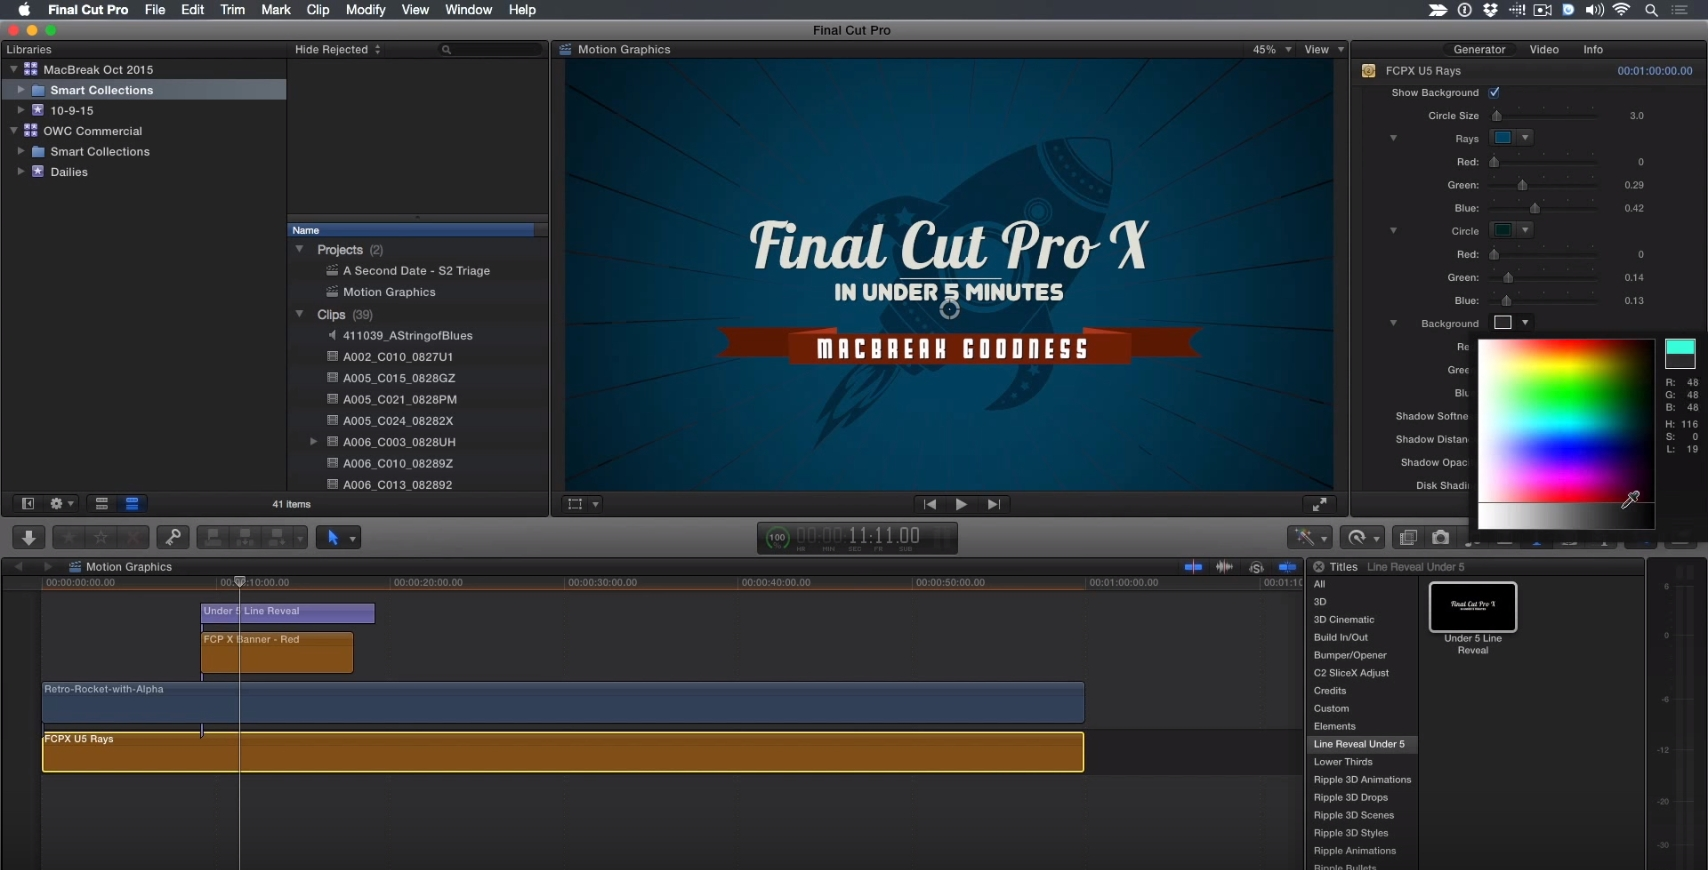 Building a Motion Graphics Toolkit in Final Cut Pro X 9